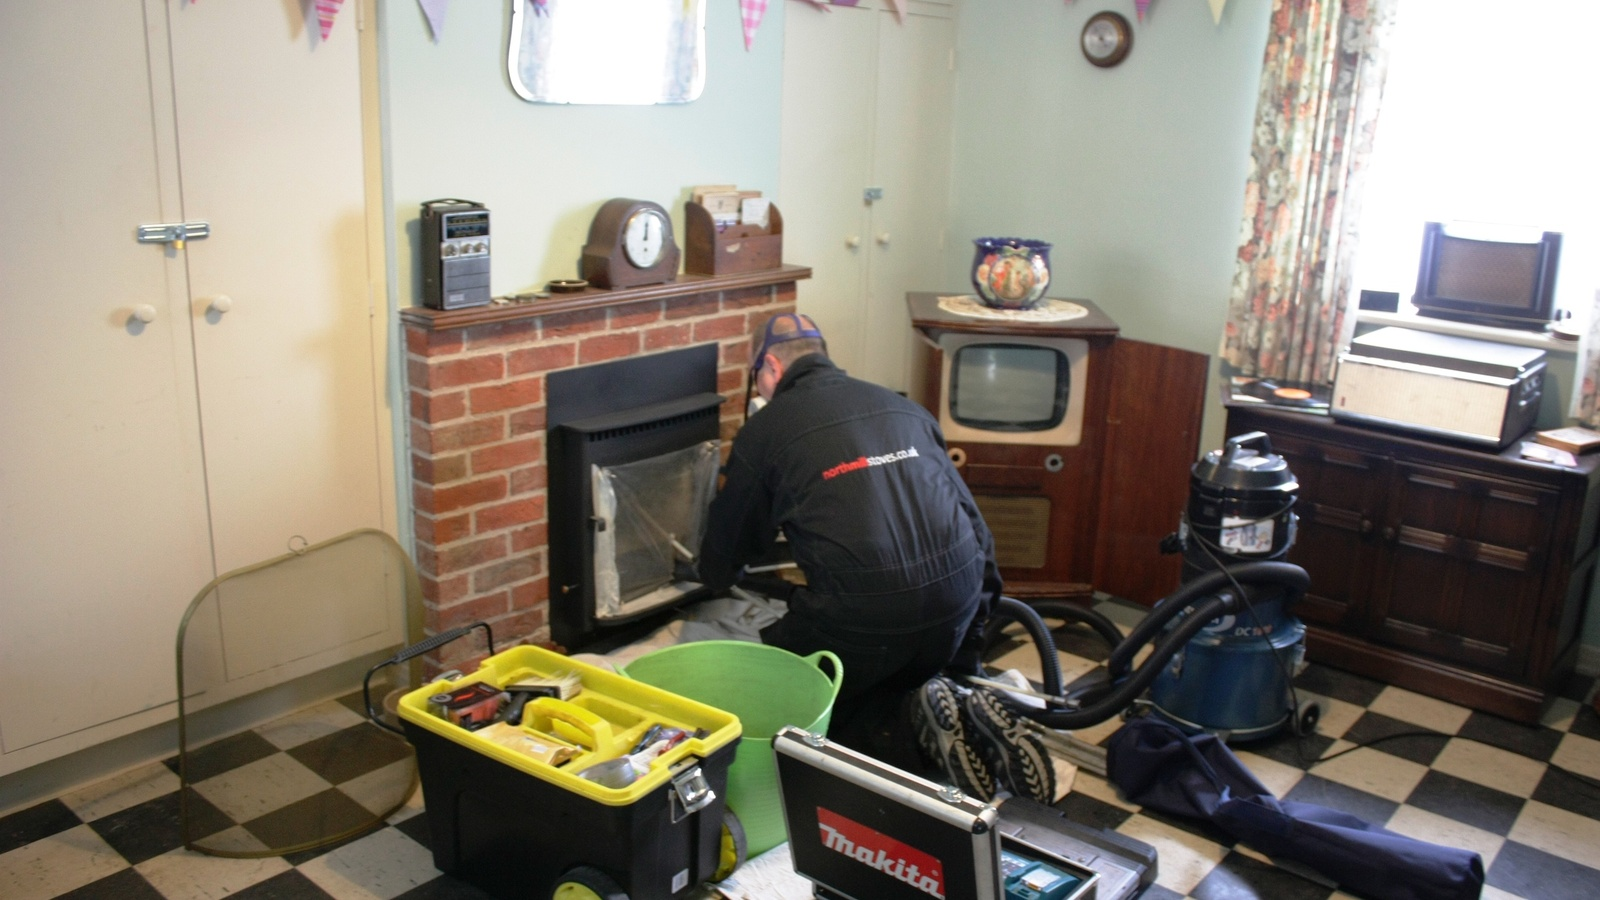 Your stove should be swept and serviced at least once a year